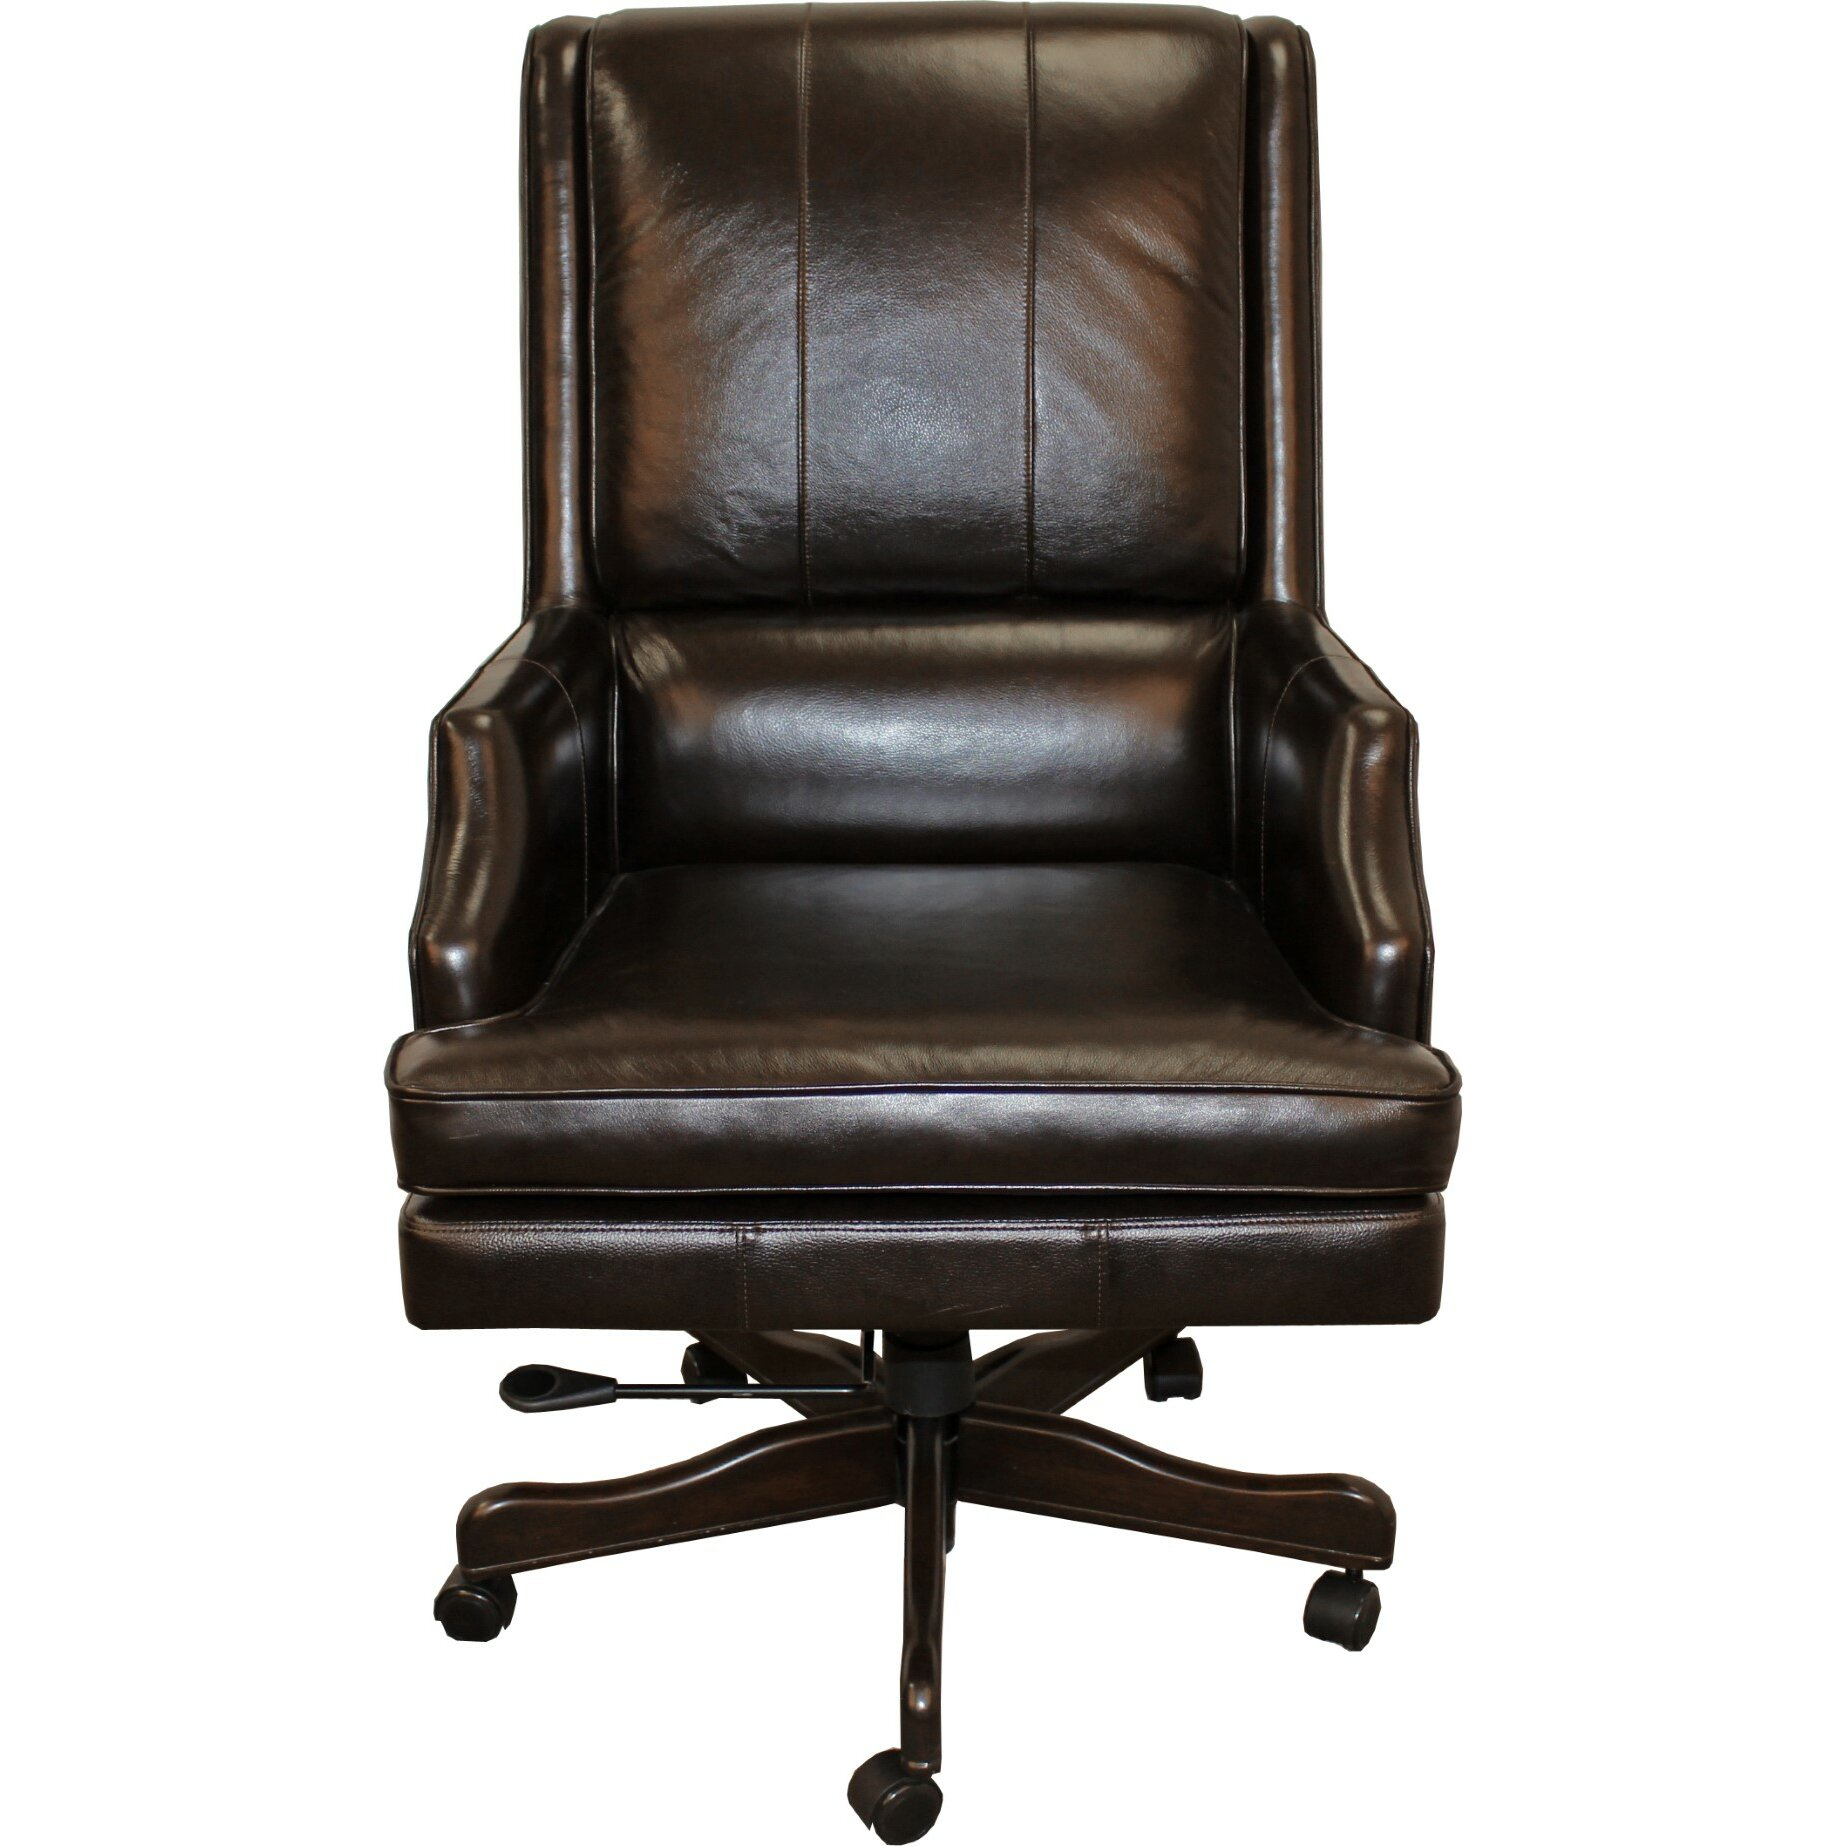 parker house leather executive chair reviews wayfair. Black Bedroom Furniture Sets. Home Design Ideas